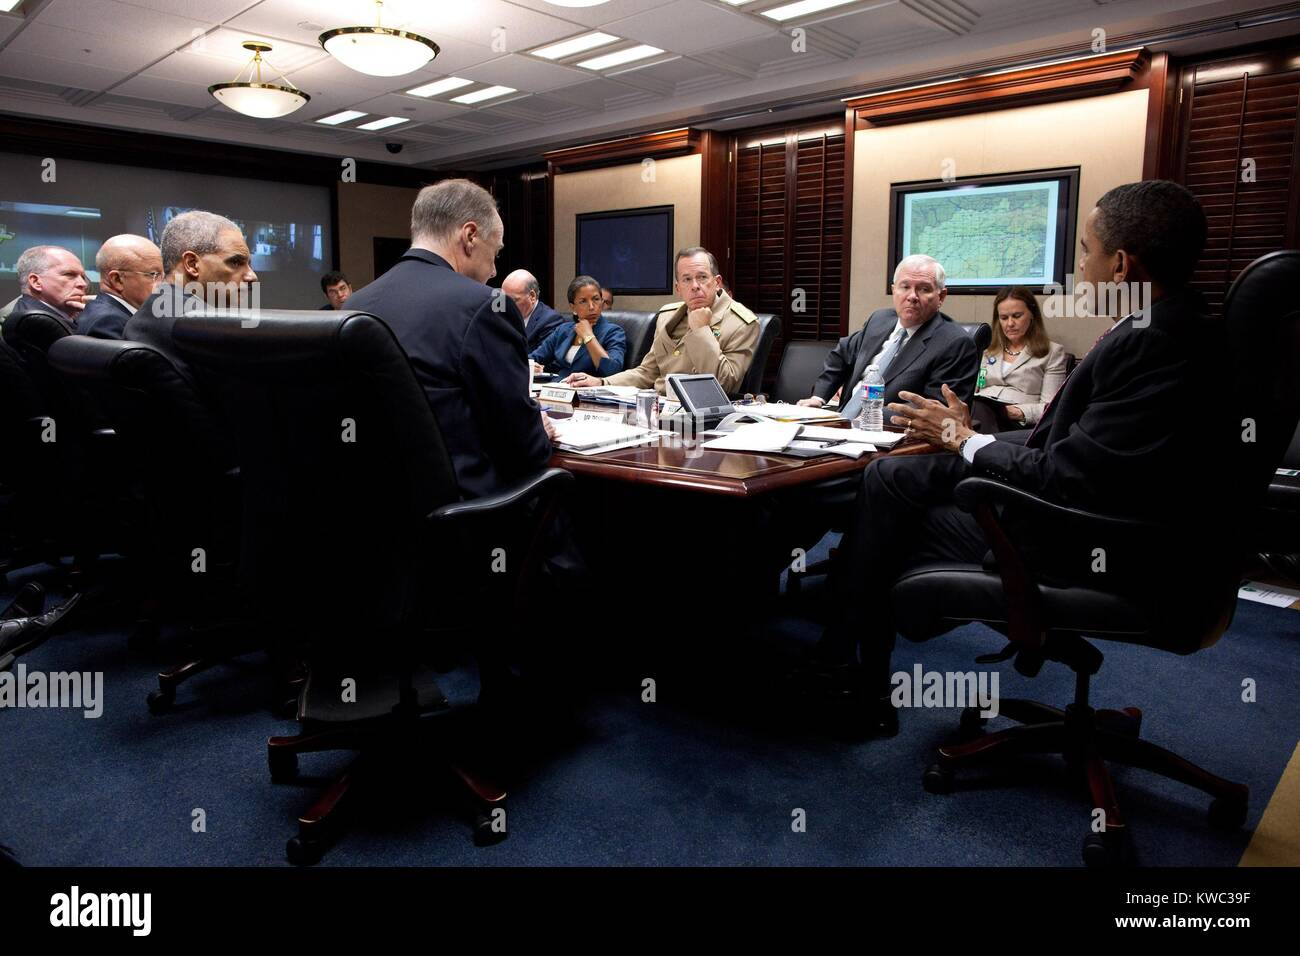 President Obama meets with national security team on Afghanistan and Pakistan, April 25, 2011. Situation Room of - Stock Image